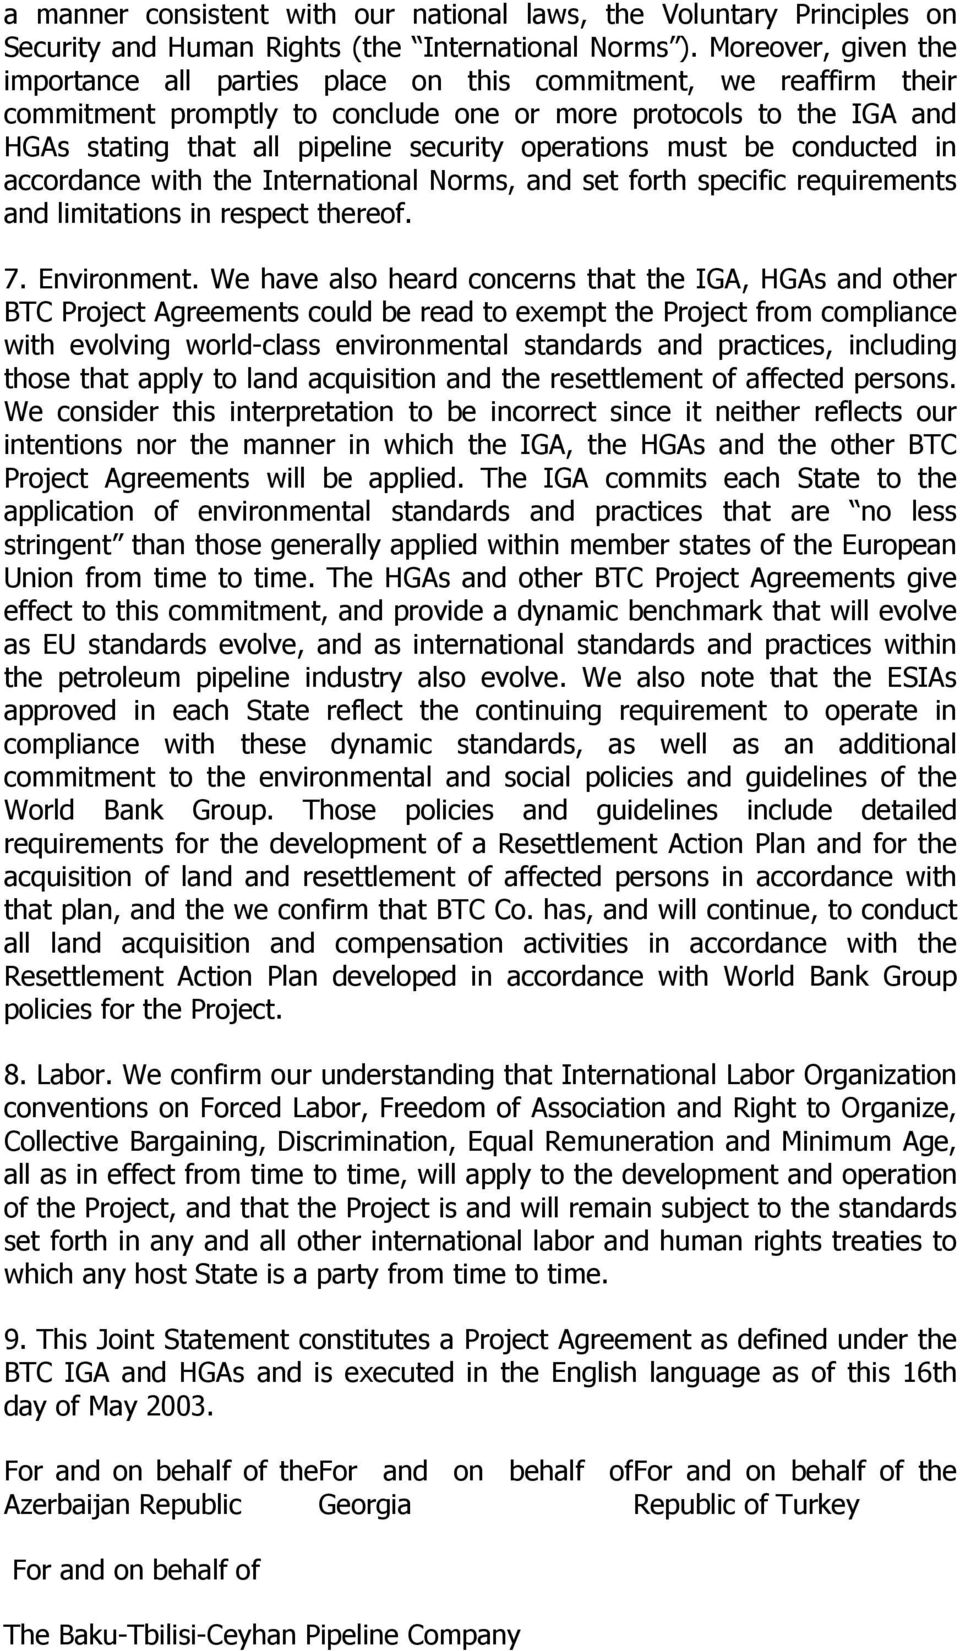 operations must be conducted in accordance with the International Norms and set forth specific requirements and limitations in respect thereof. 7. Environment.